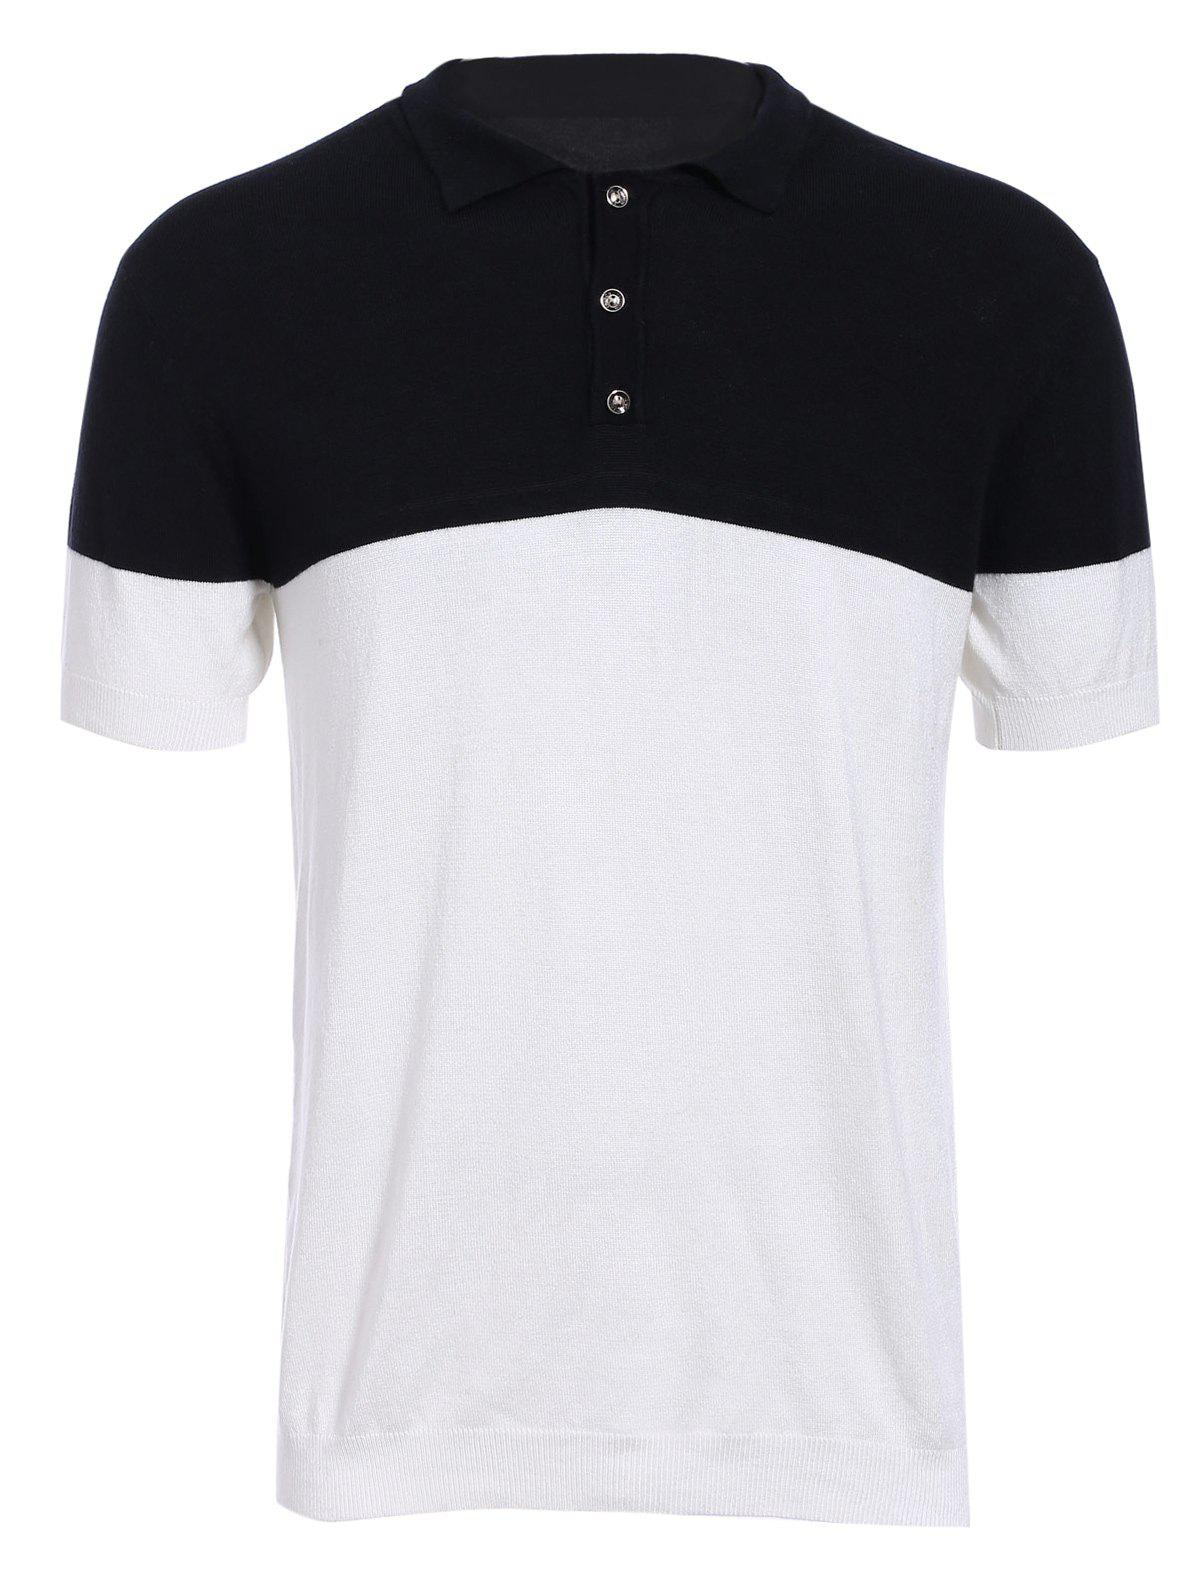 Fashion Turn-down Collar Color Block Short Sleeves Men's Knit Polo T-Shirt - WHITE/BLACK XL